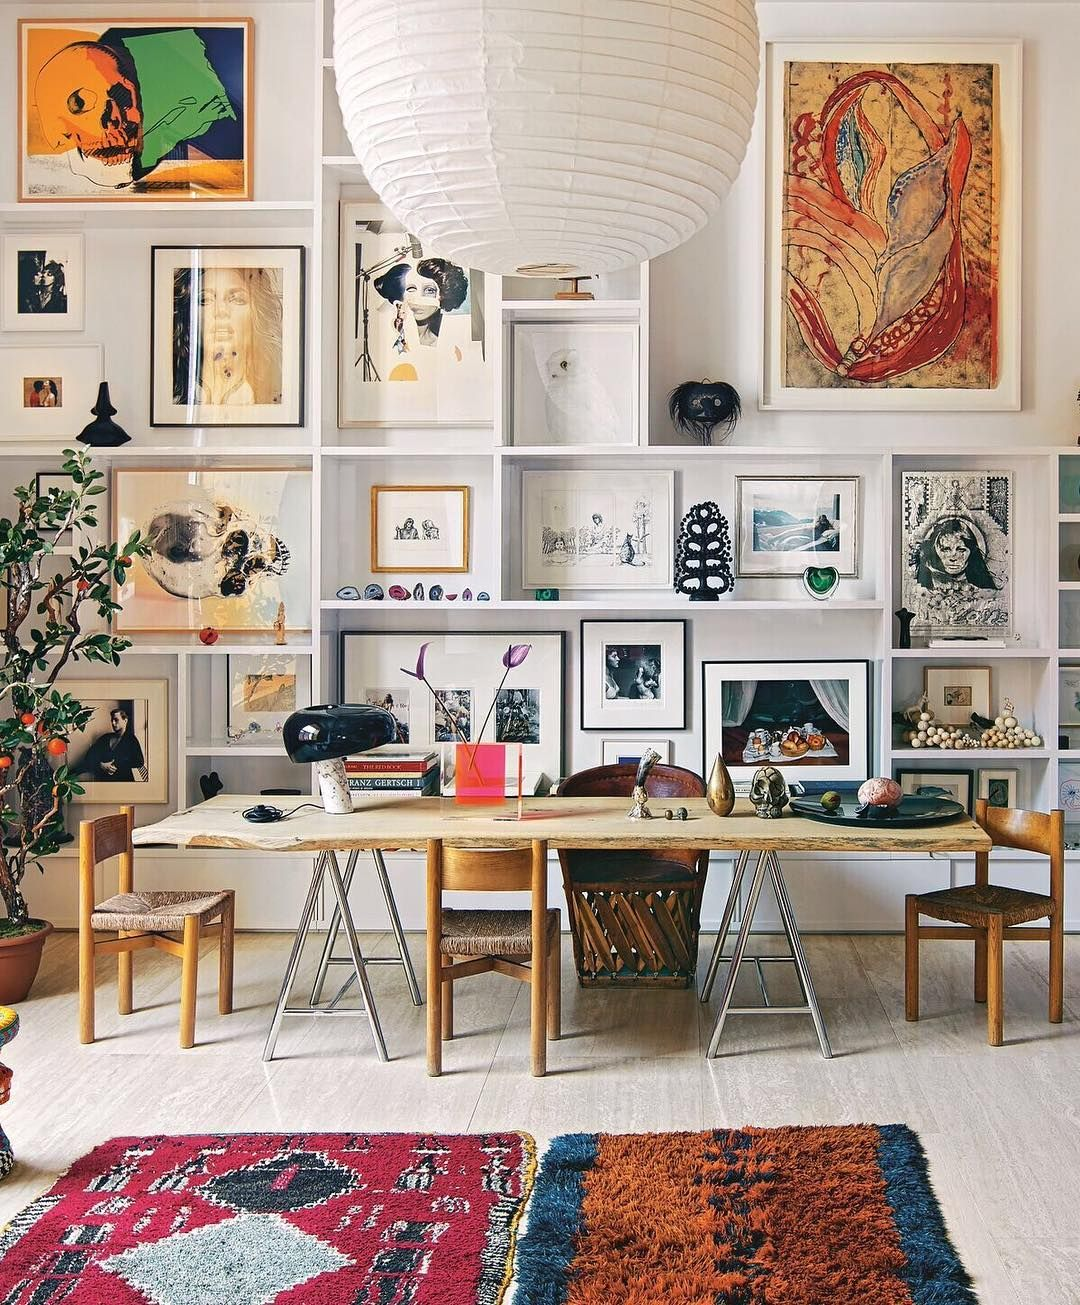 Office Eclectic Room: Pin By Jennica Hillicoss On Pole Building Interiors In